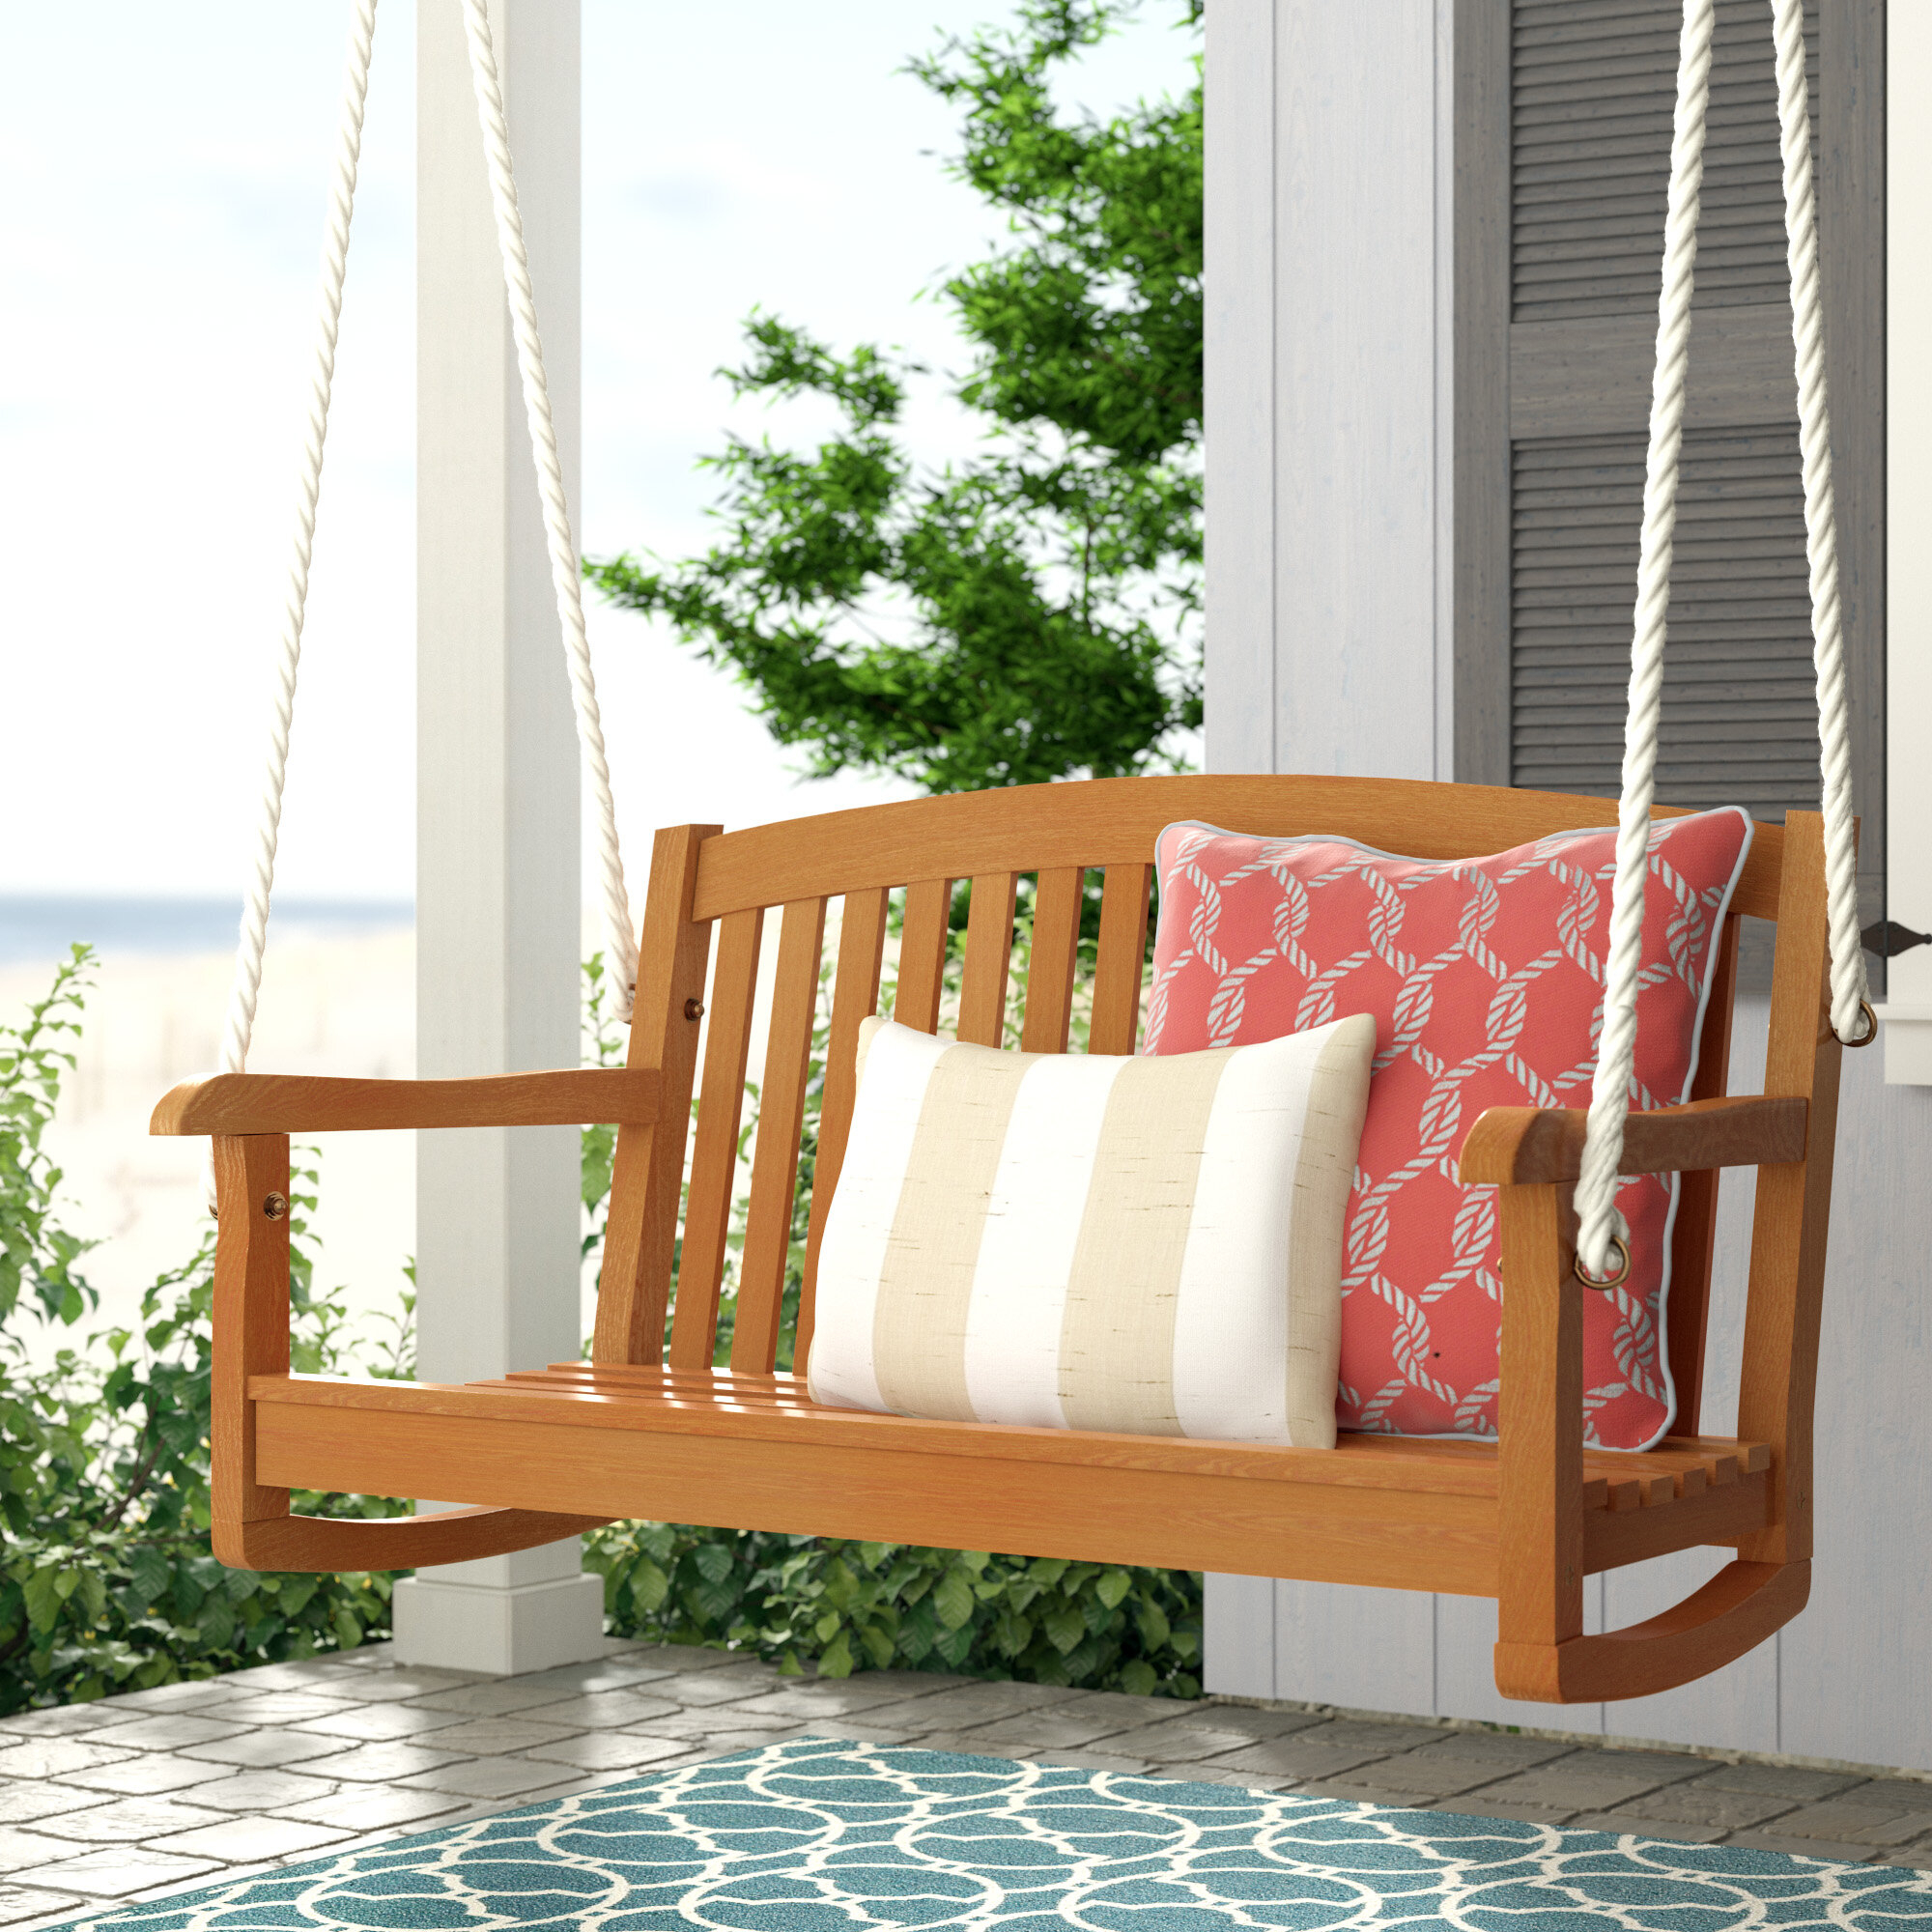 Beachcrest Home Portland Teak Porch Swing Intended For Fordyce Porch Swings (View 22 of 25)